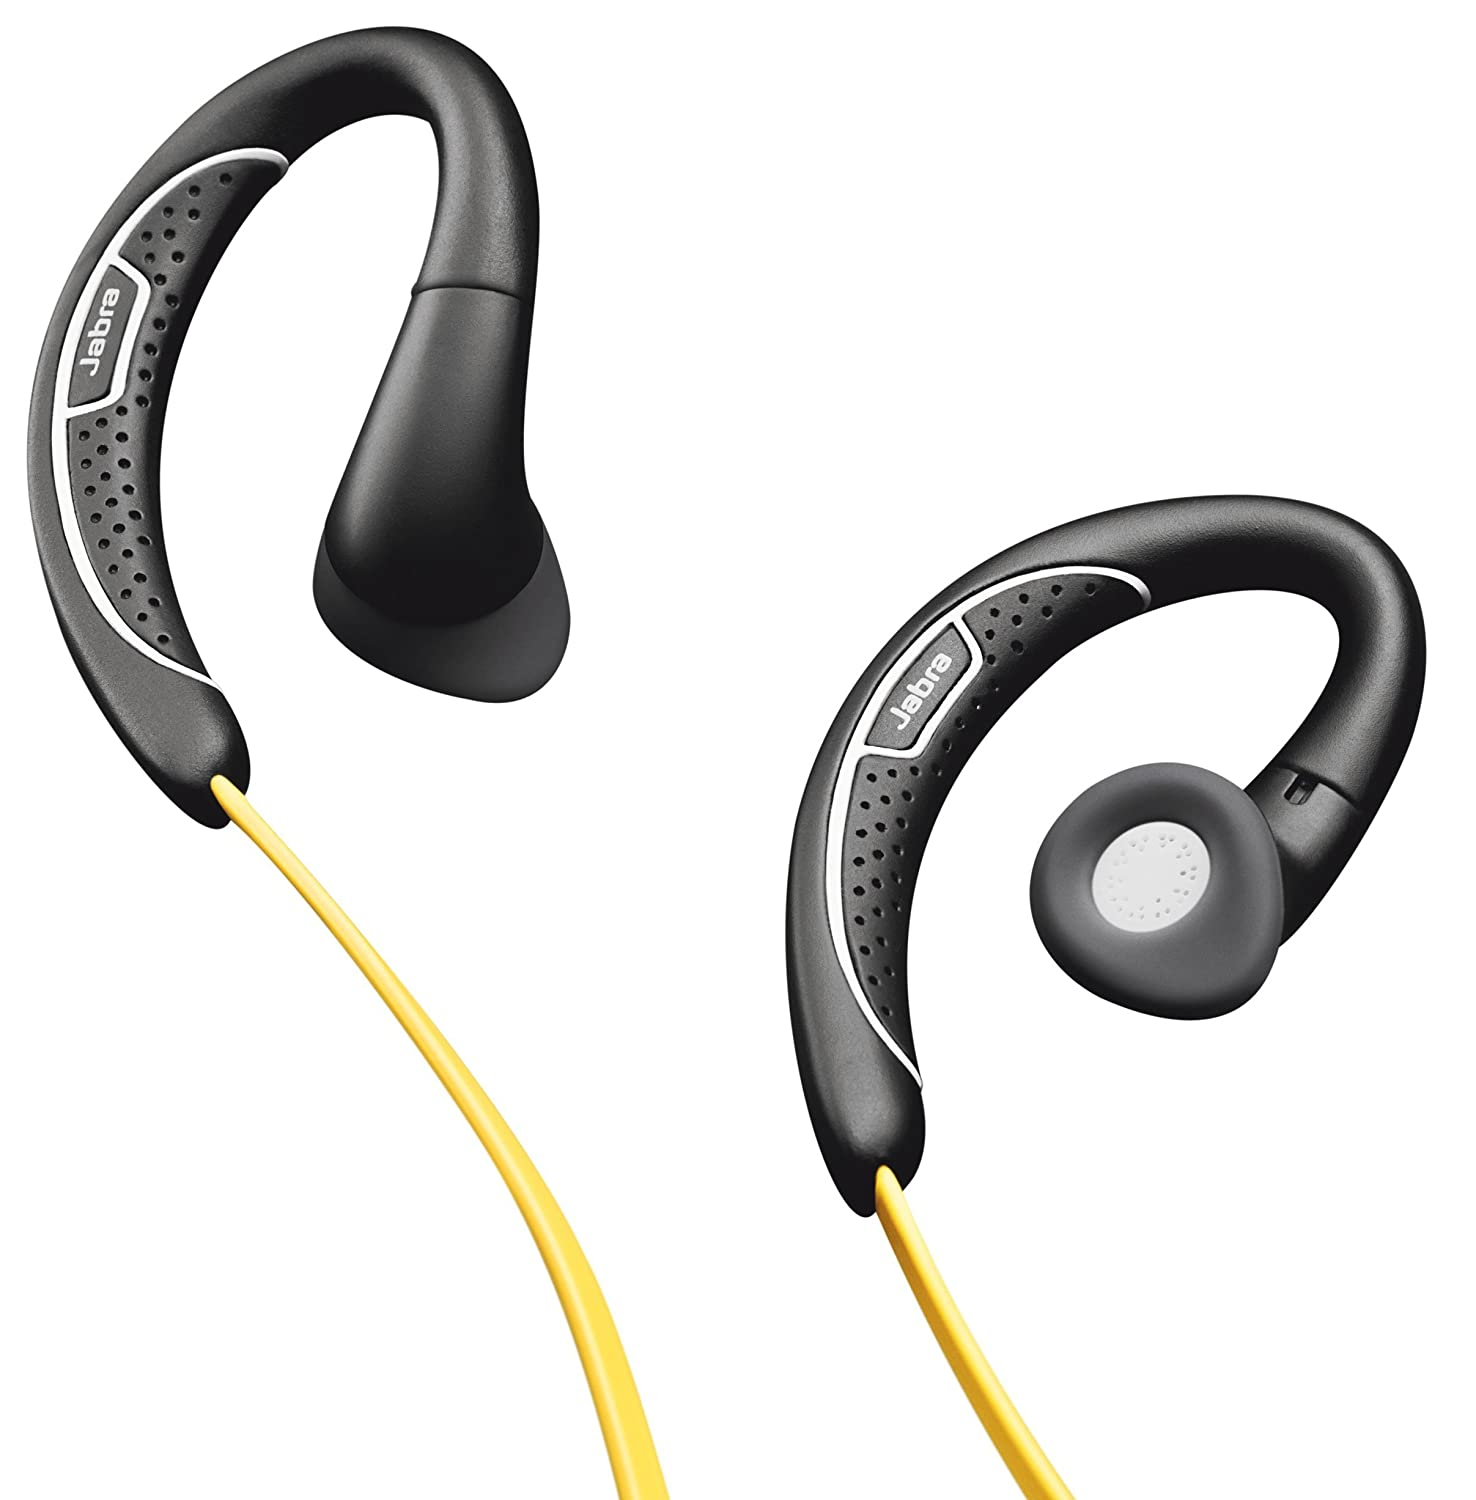 Jabra Sport Corded Sports Headset Retail Packaging Pace Wireless Earbuds Yellow Black Discontinued By Manufacturer Cell Phones Accessories